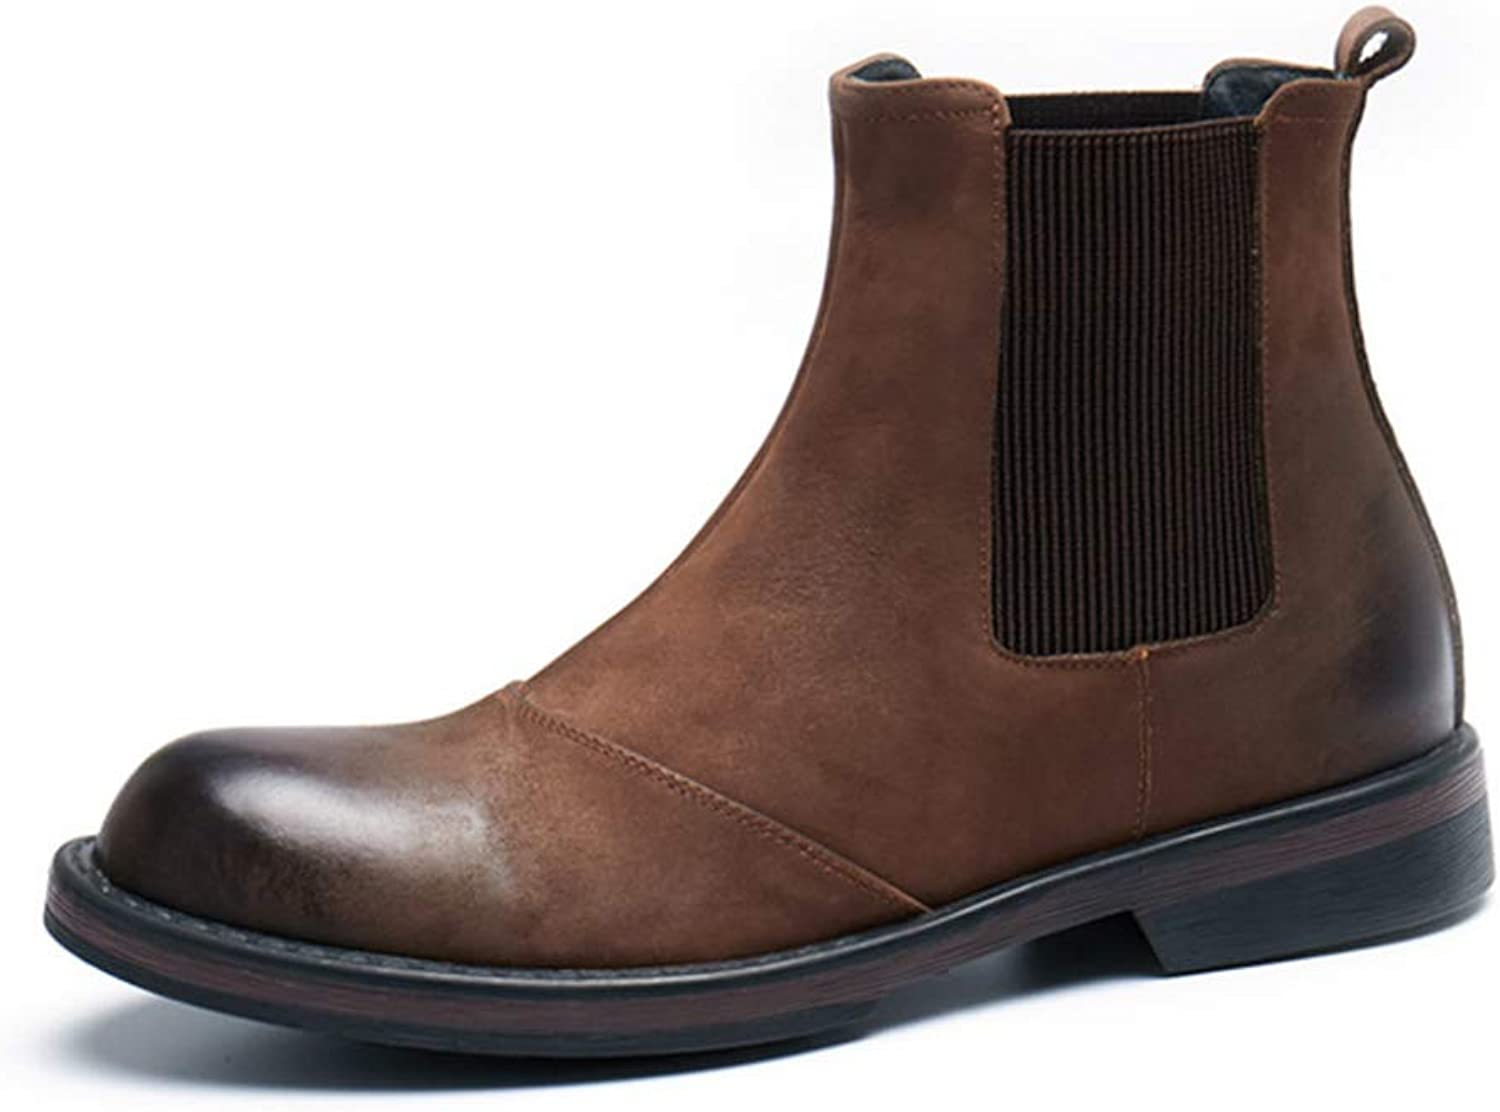 Chelsea Chelsea Chelsea Boots Short Boots Leather Martin Boots Desert Boots Retro Cowboy Boots AnBoots  spara upp till 70%